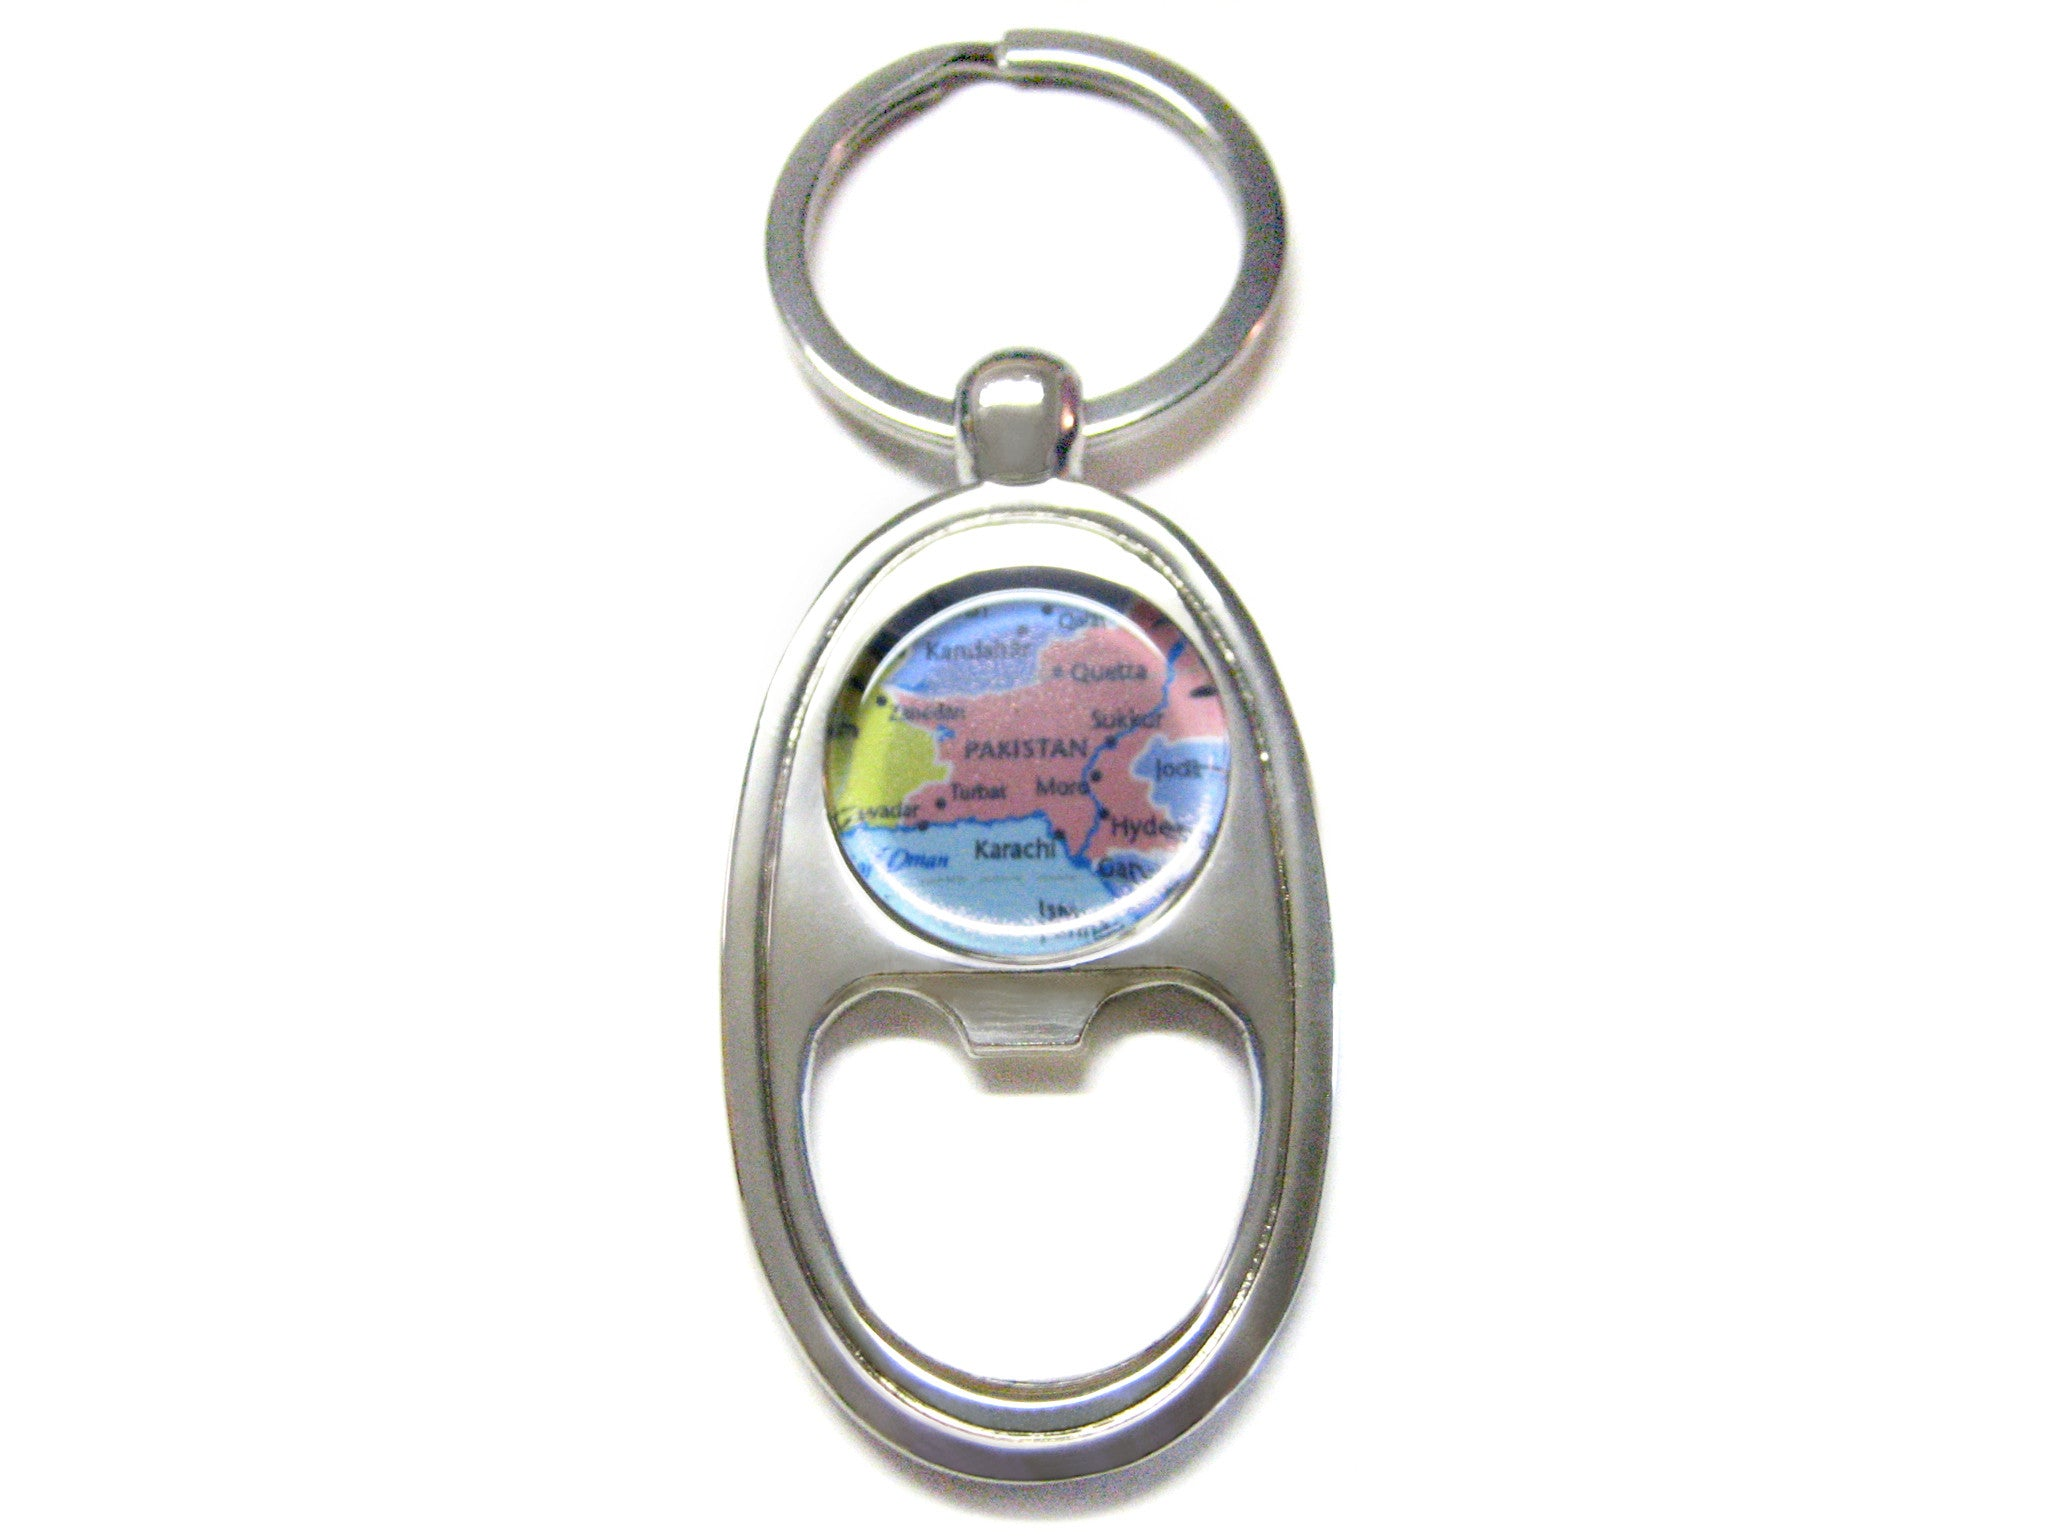 Pakistan Map Bottle Opener Key Chain